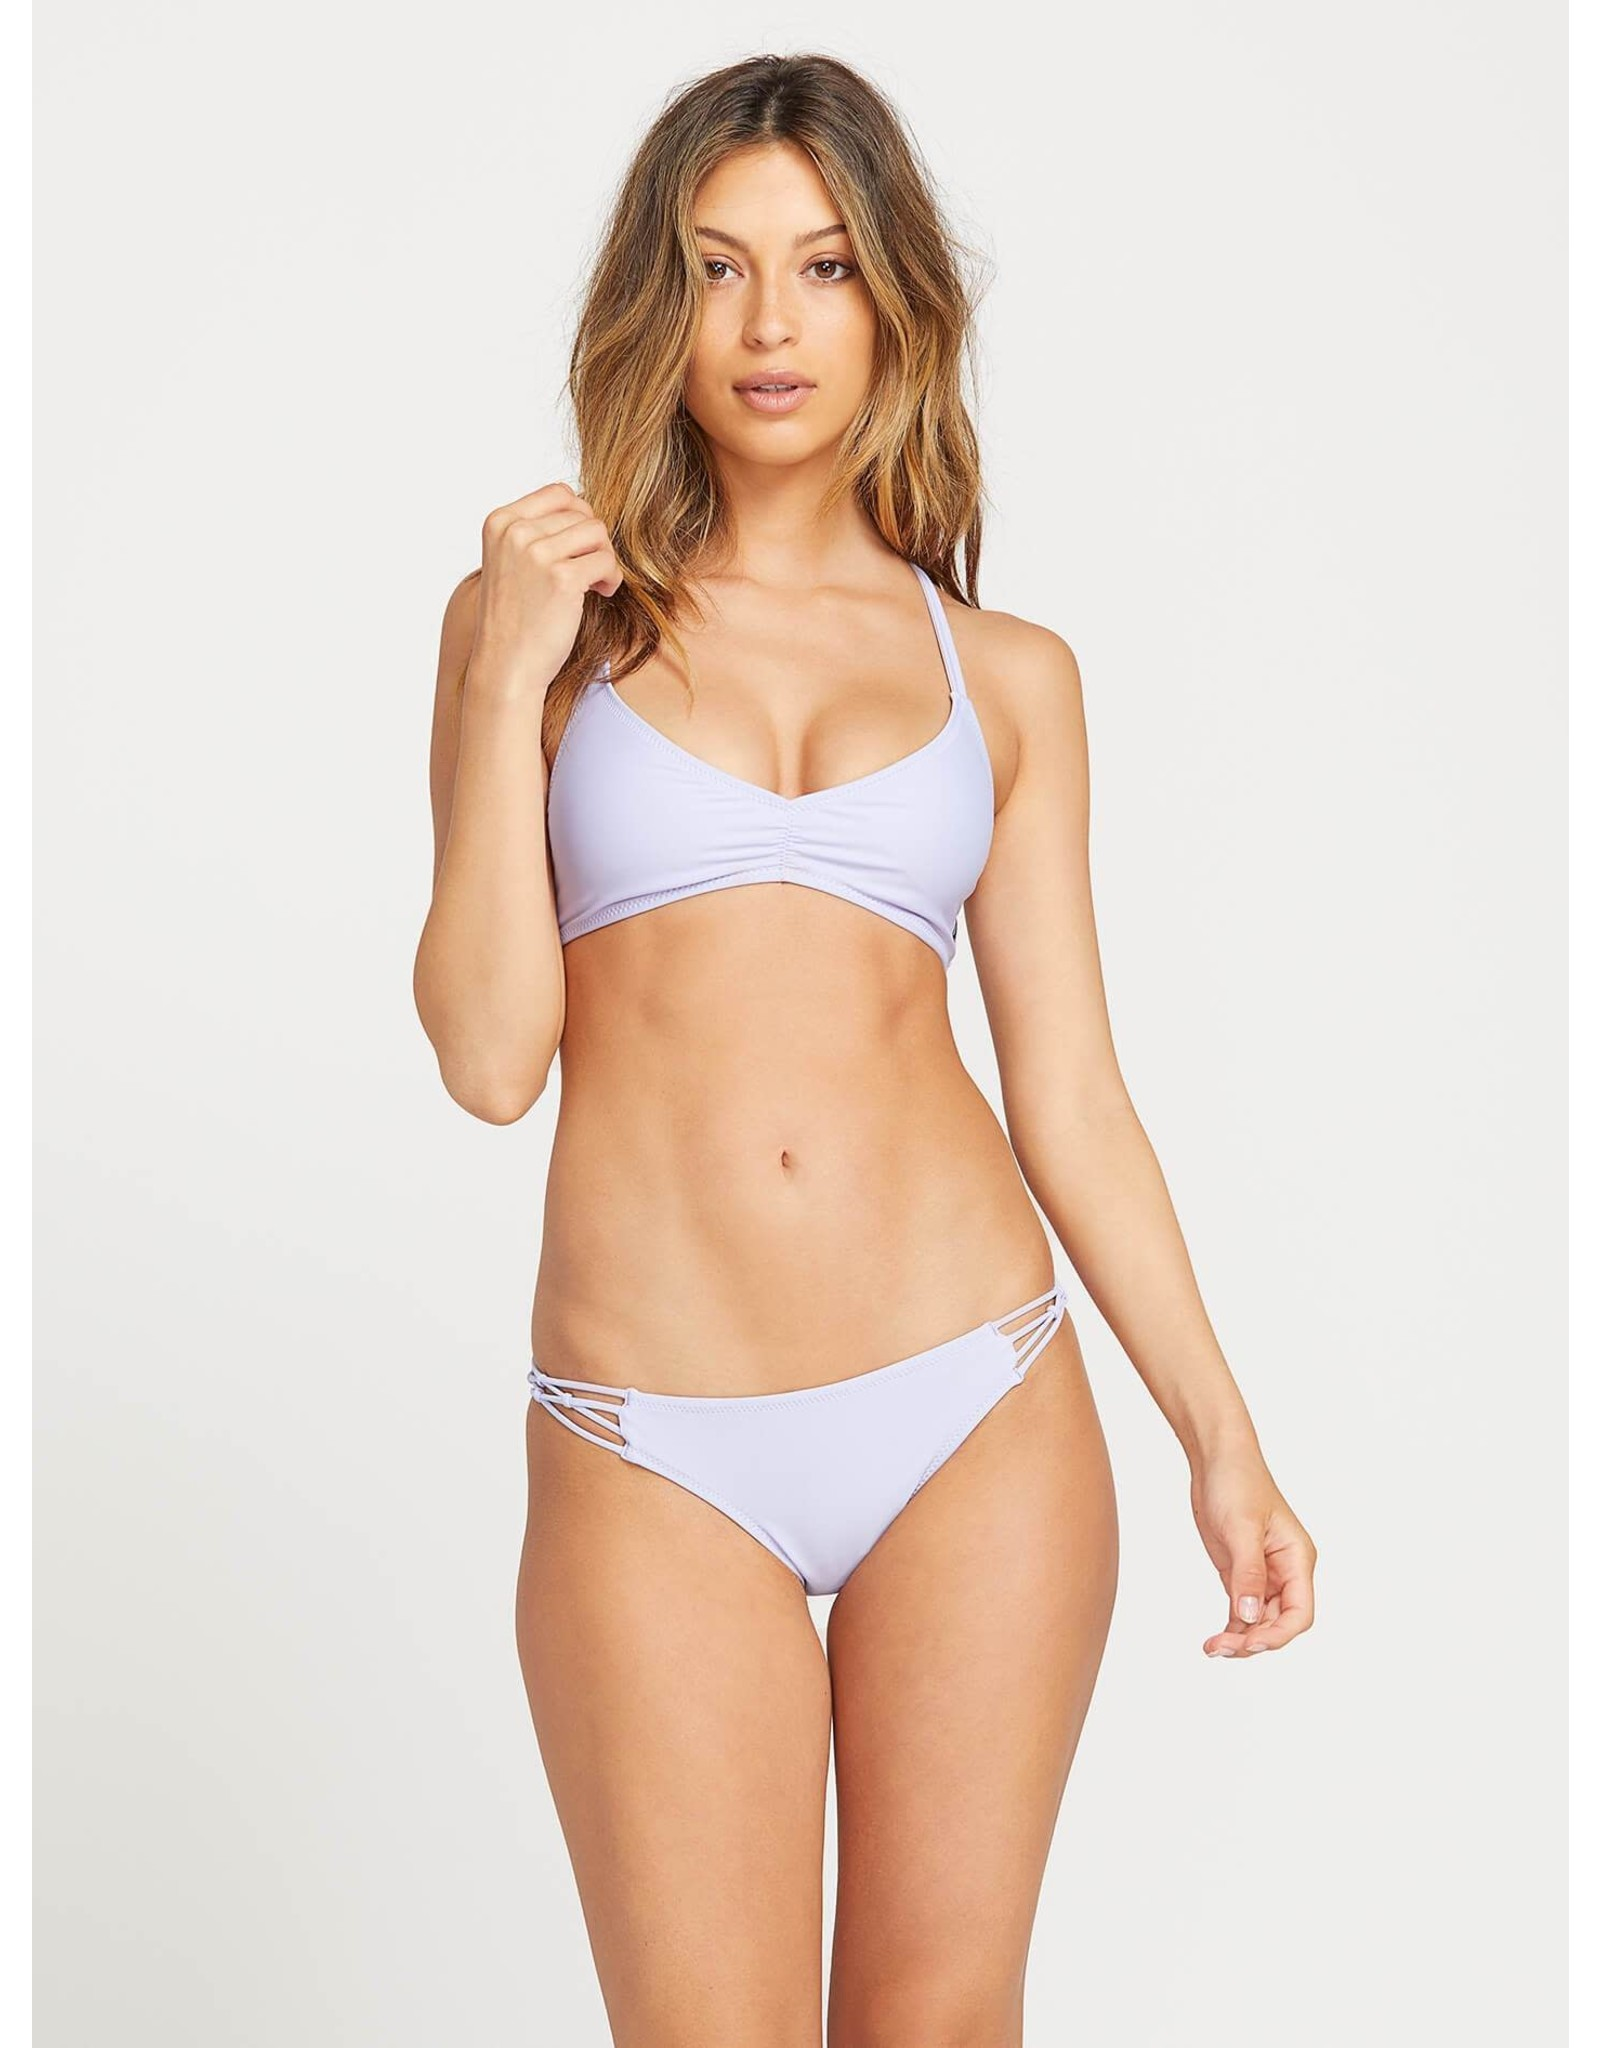 VOLCOM VOLCOM SIMPLY SOLID FULL BATHING SUIT BOTTOM